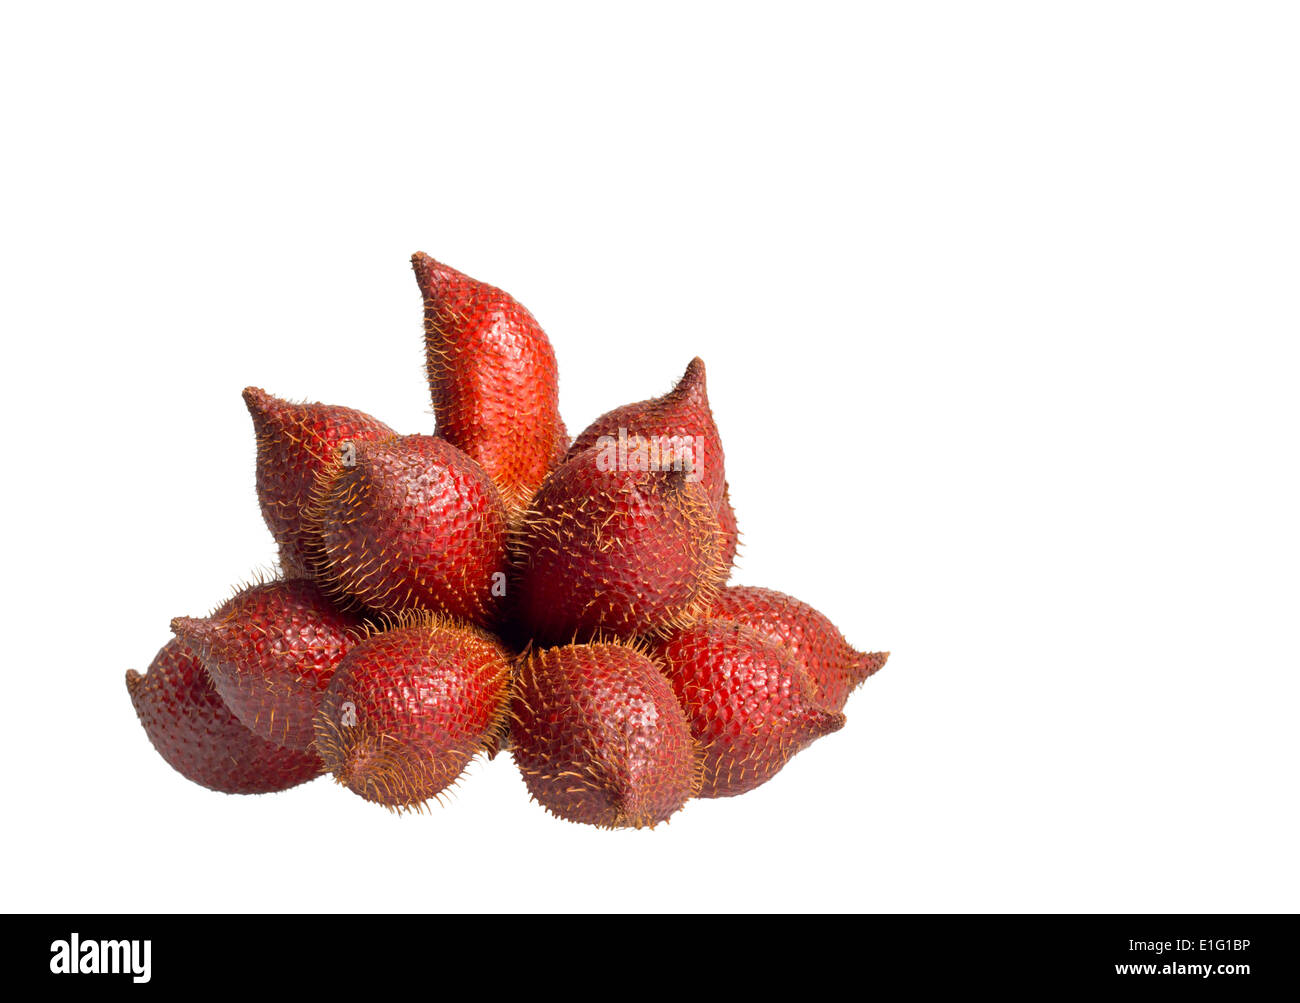 Cluster of ripe Salak on isolate white background - Stock Image